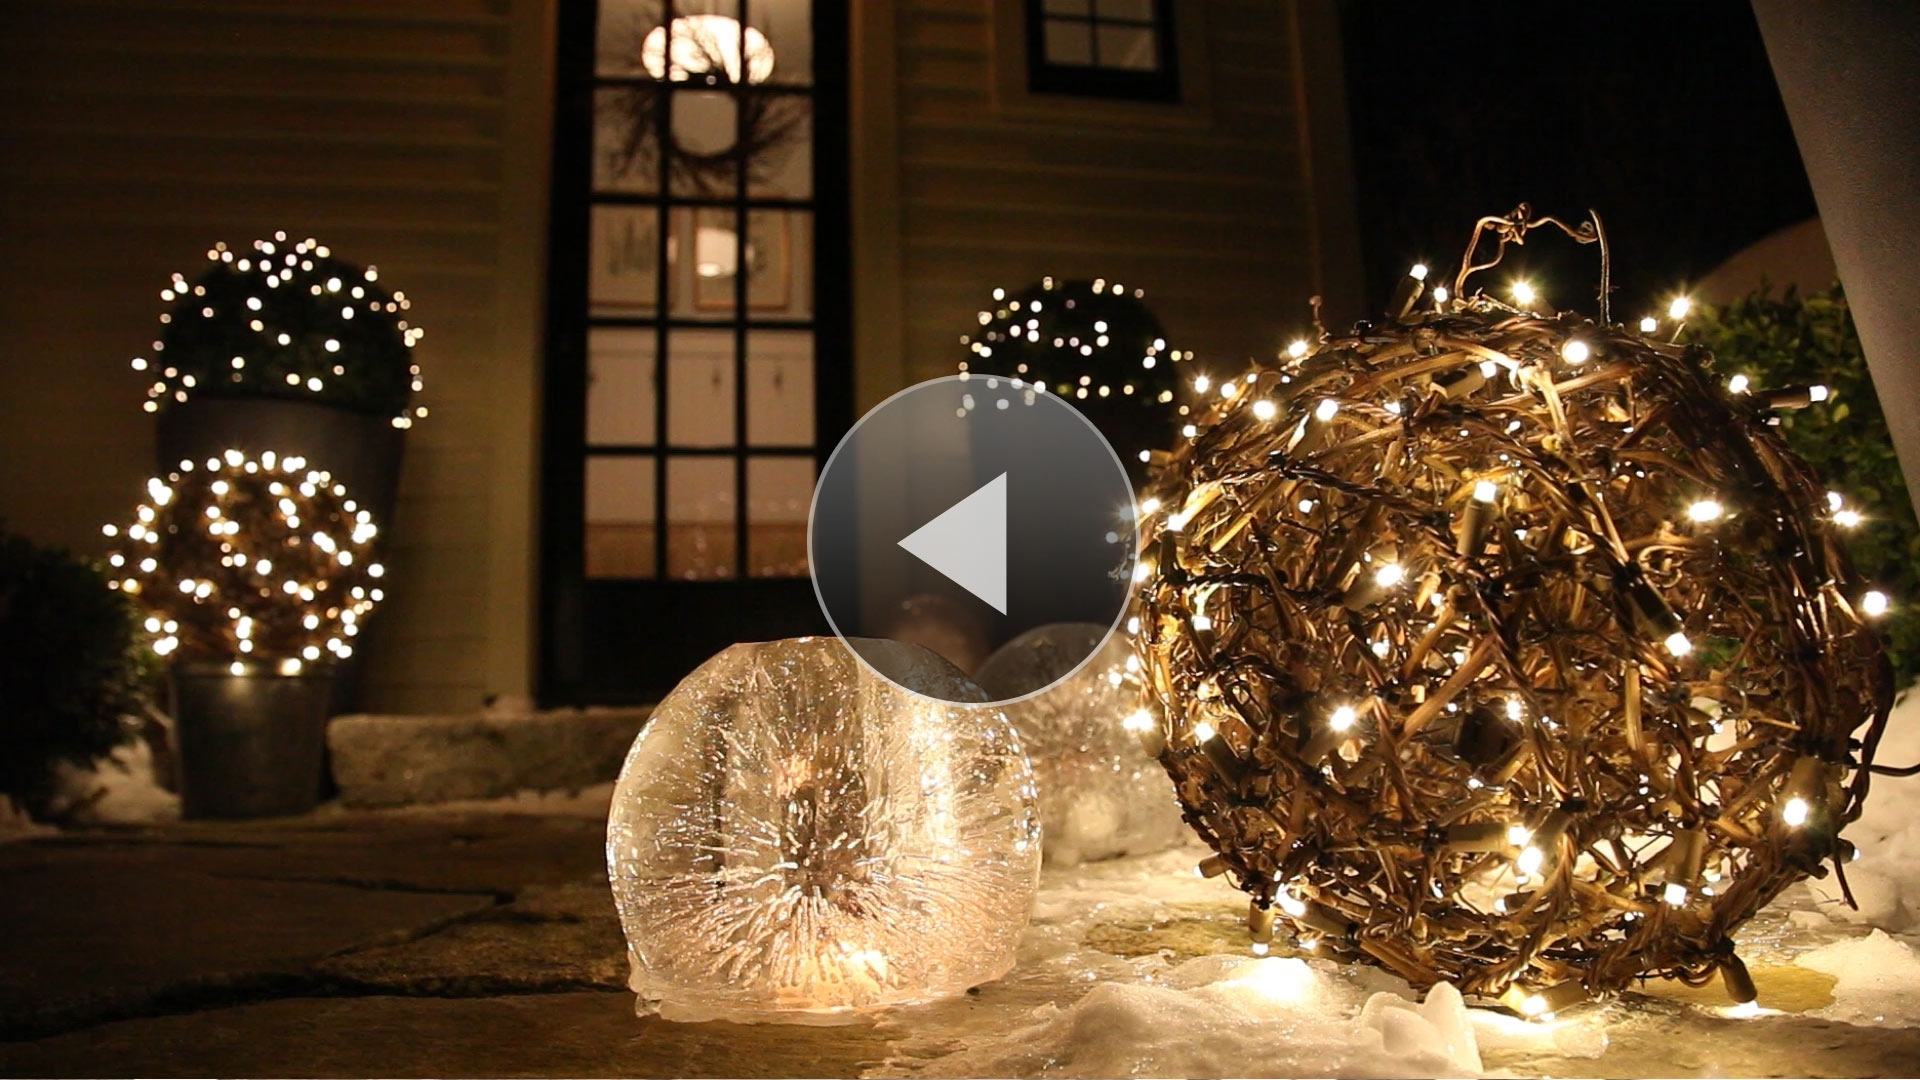 outdoor sphere lights front yard favorite outdoor hanging sphere lights in diy lit spheres balsam hill garden photo gallery of showing 20 photos